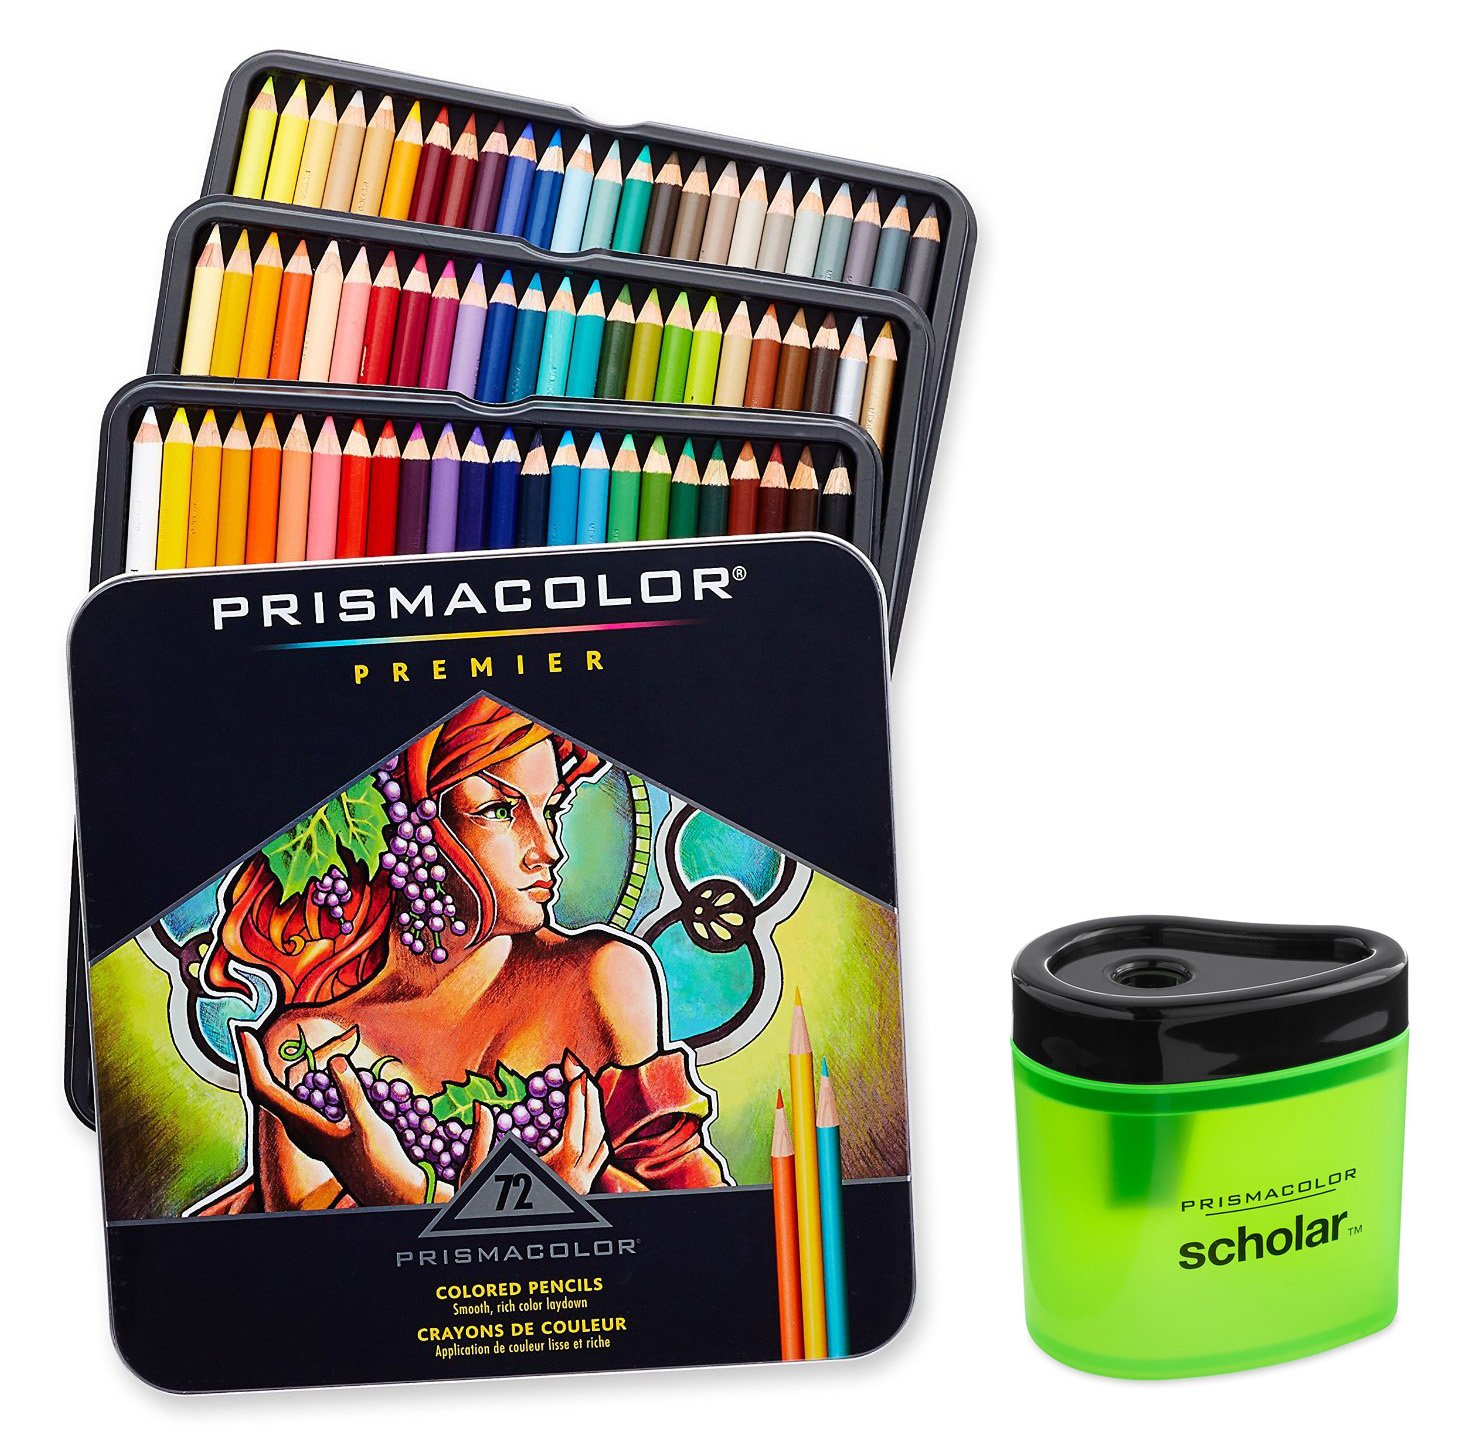 Prismacolor 3599TN Premier Soft Core 72 Colored Pencils + 1774266 Scholar Colored Pencil Sharpener; Perfect for Layering, Blending and Shading; Soft, Thick Cores Create a Smooth Color Laydown by Prismacolor (Image #3)